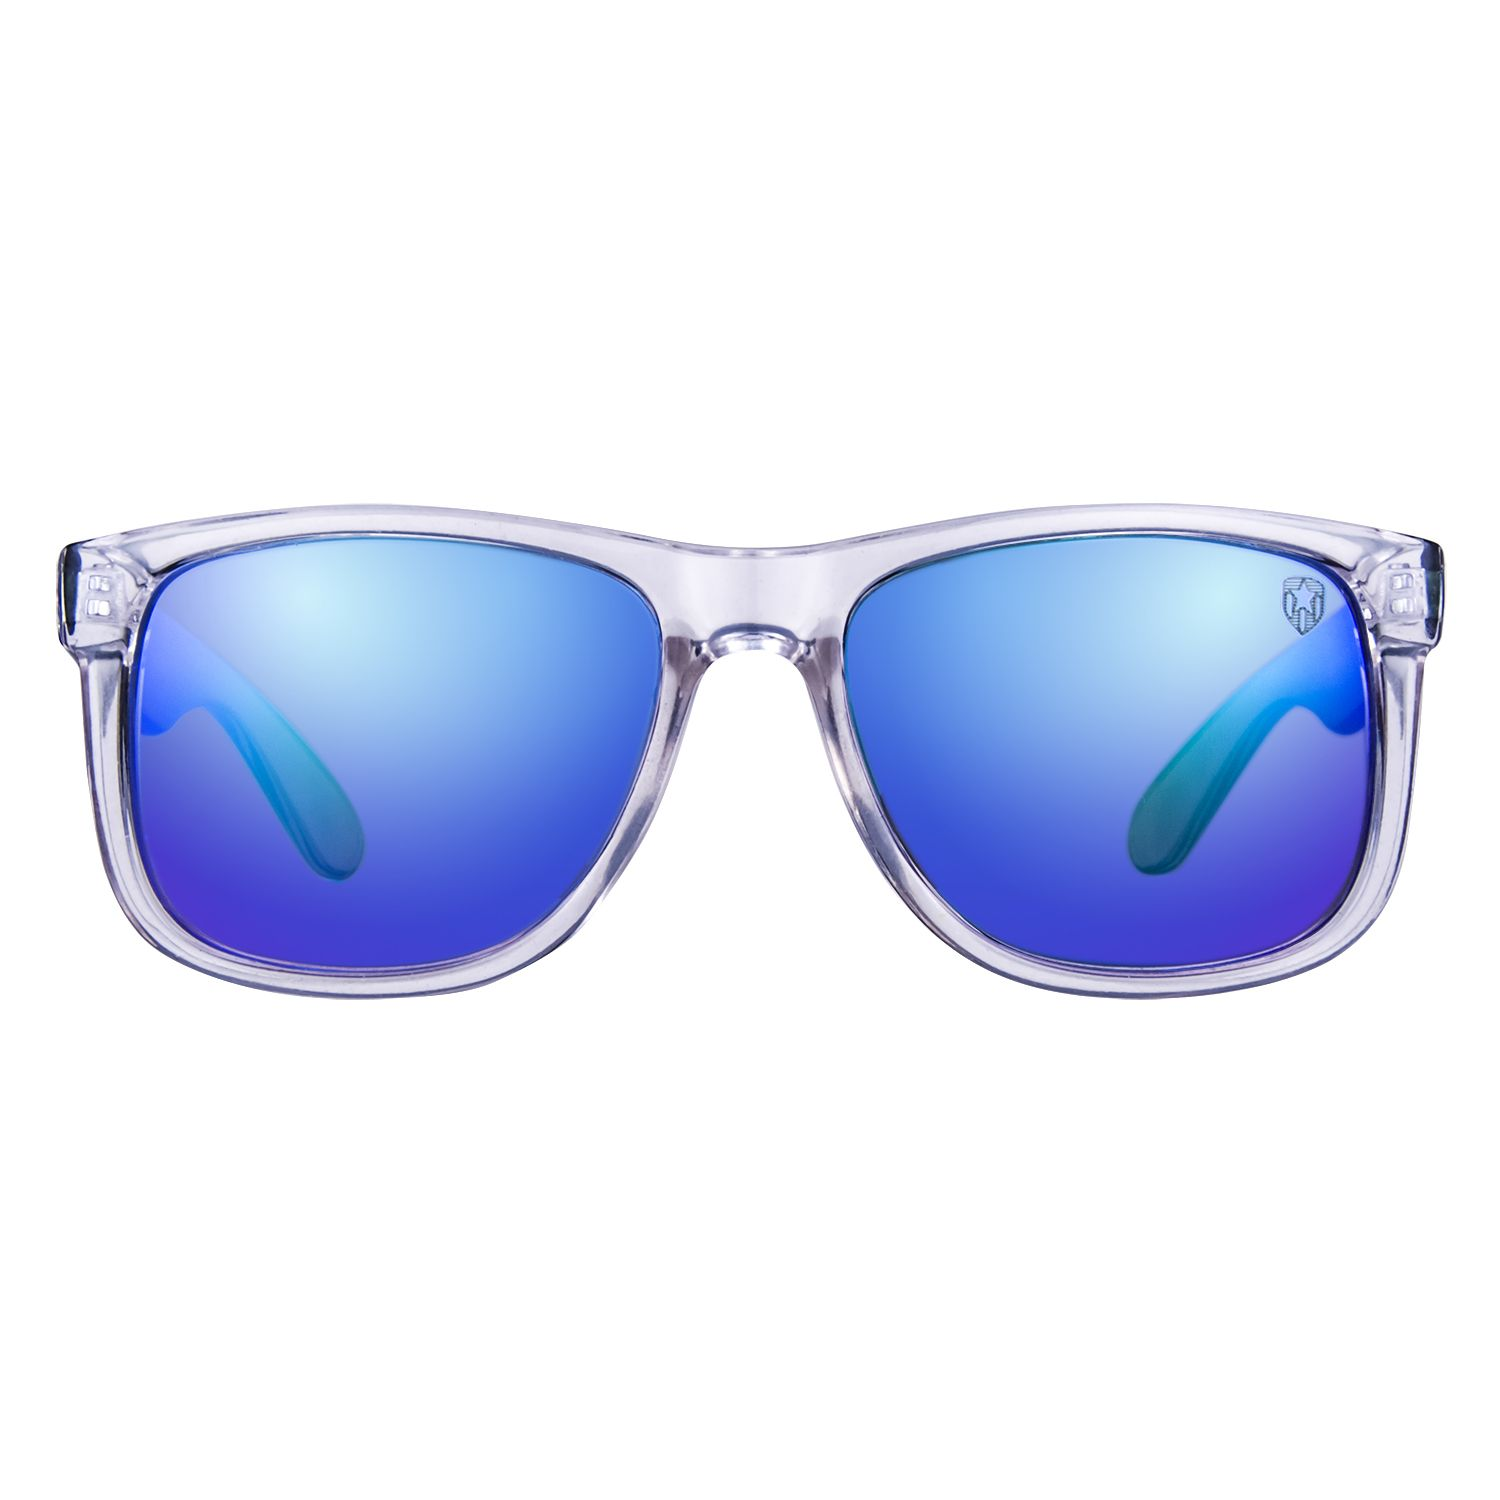 09fe4ac7f4d Buy Mens Blue Hawaii Wayfarer Sunglasses Online At Best Price India